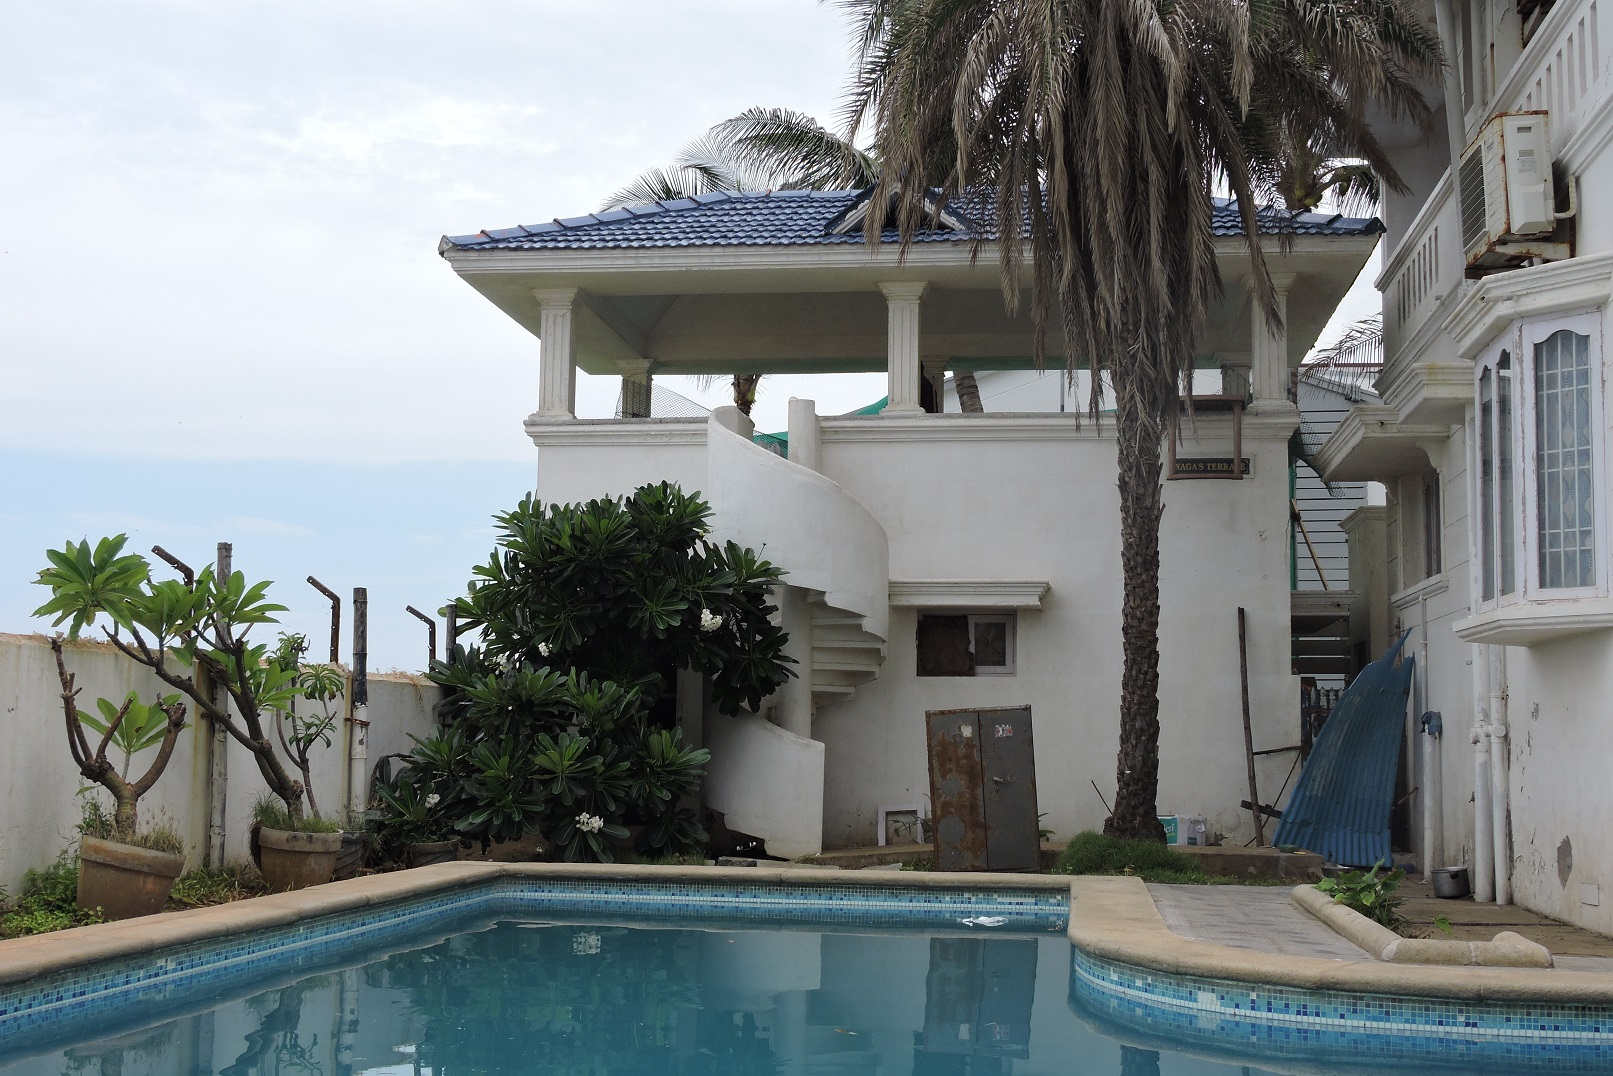 Beach Houses For Rent With Swimming Pool In Chennai Ecr